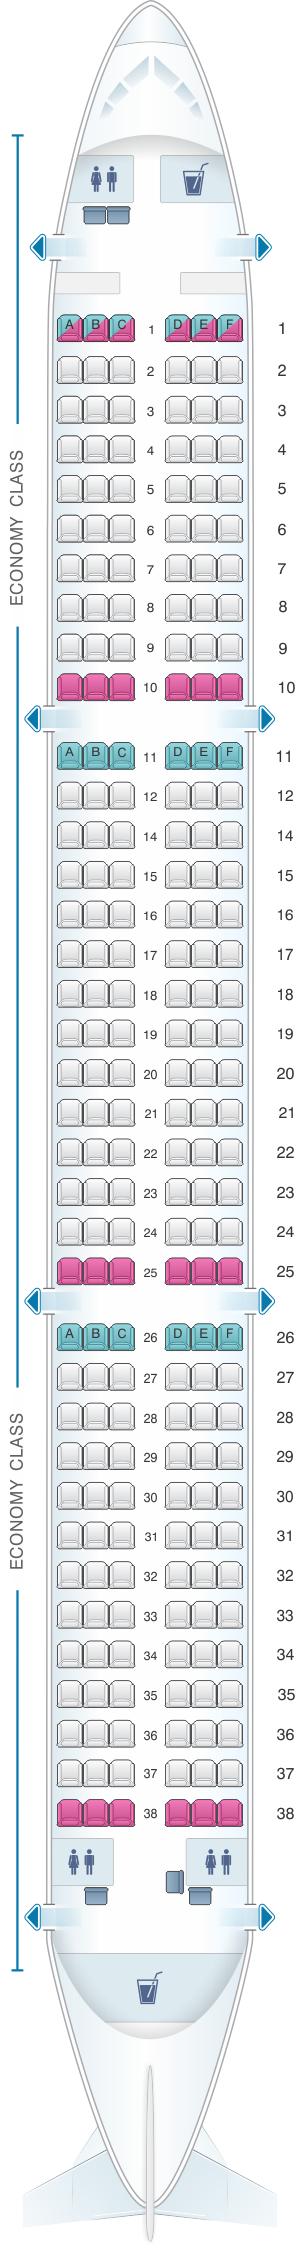 Seat map for Freebird Airlines Airbus A321